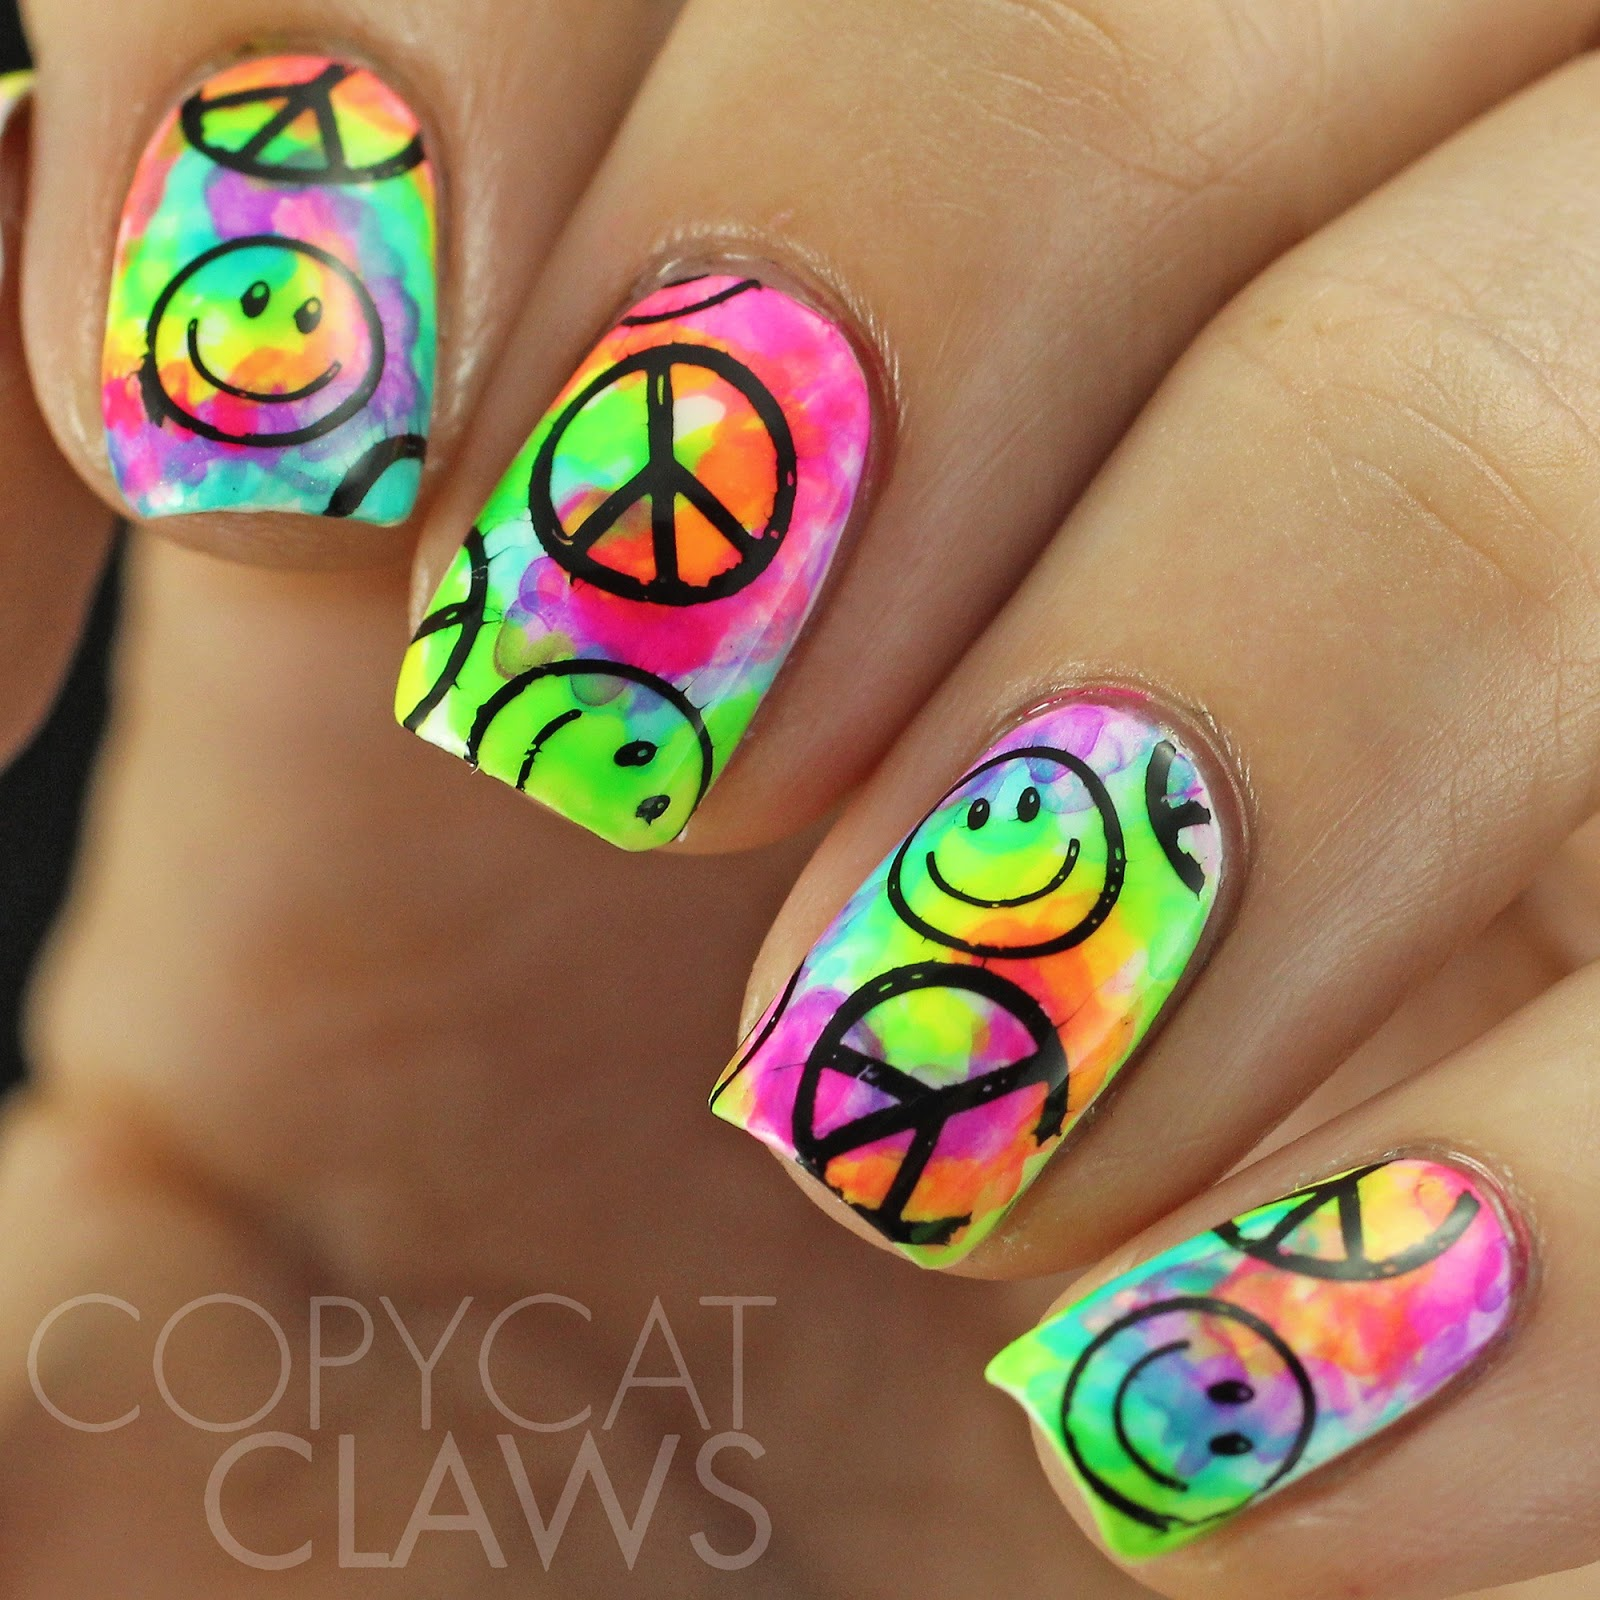 Copycat Claws Tie Dye Nails With Stamping